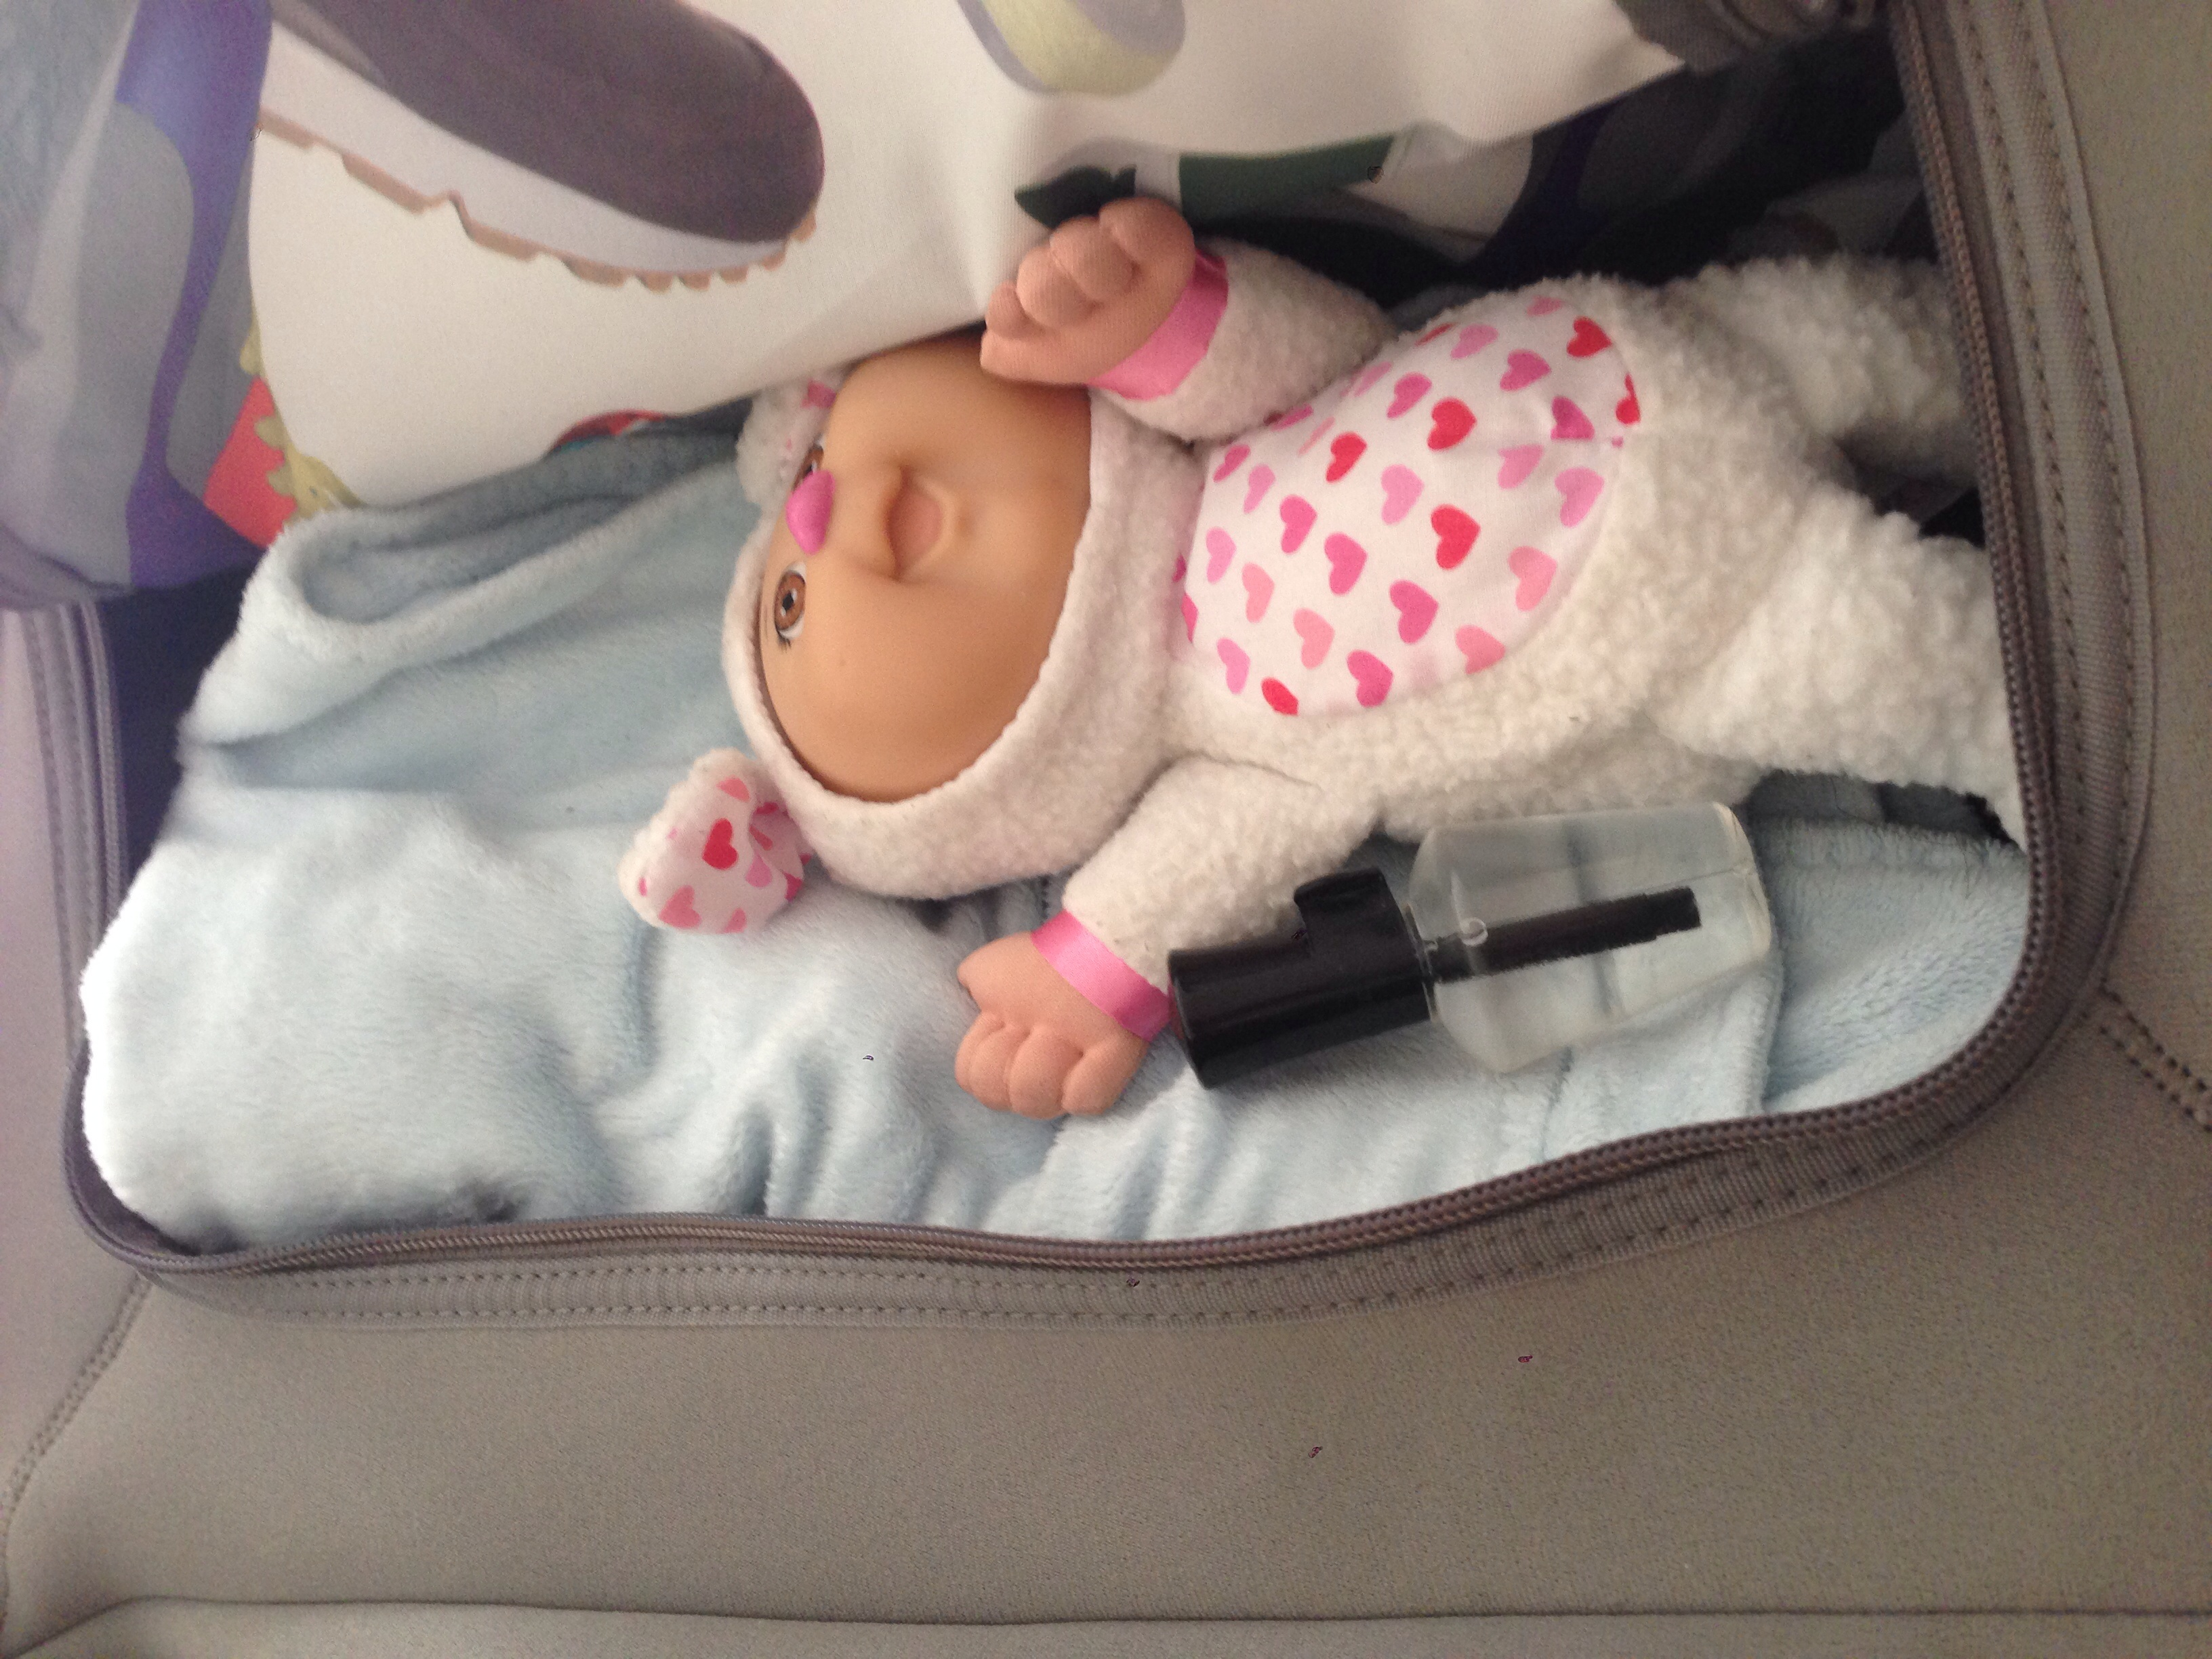 Heading Home (and how a Cabbage Patch Doll made me happy)